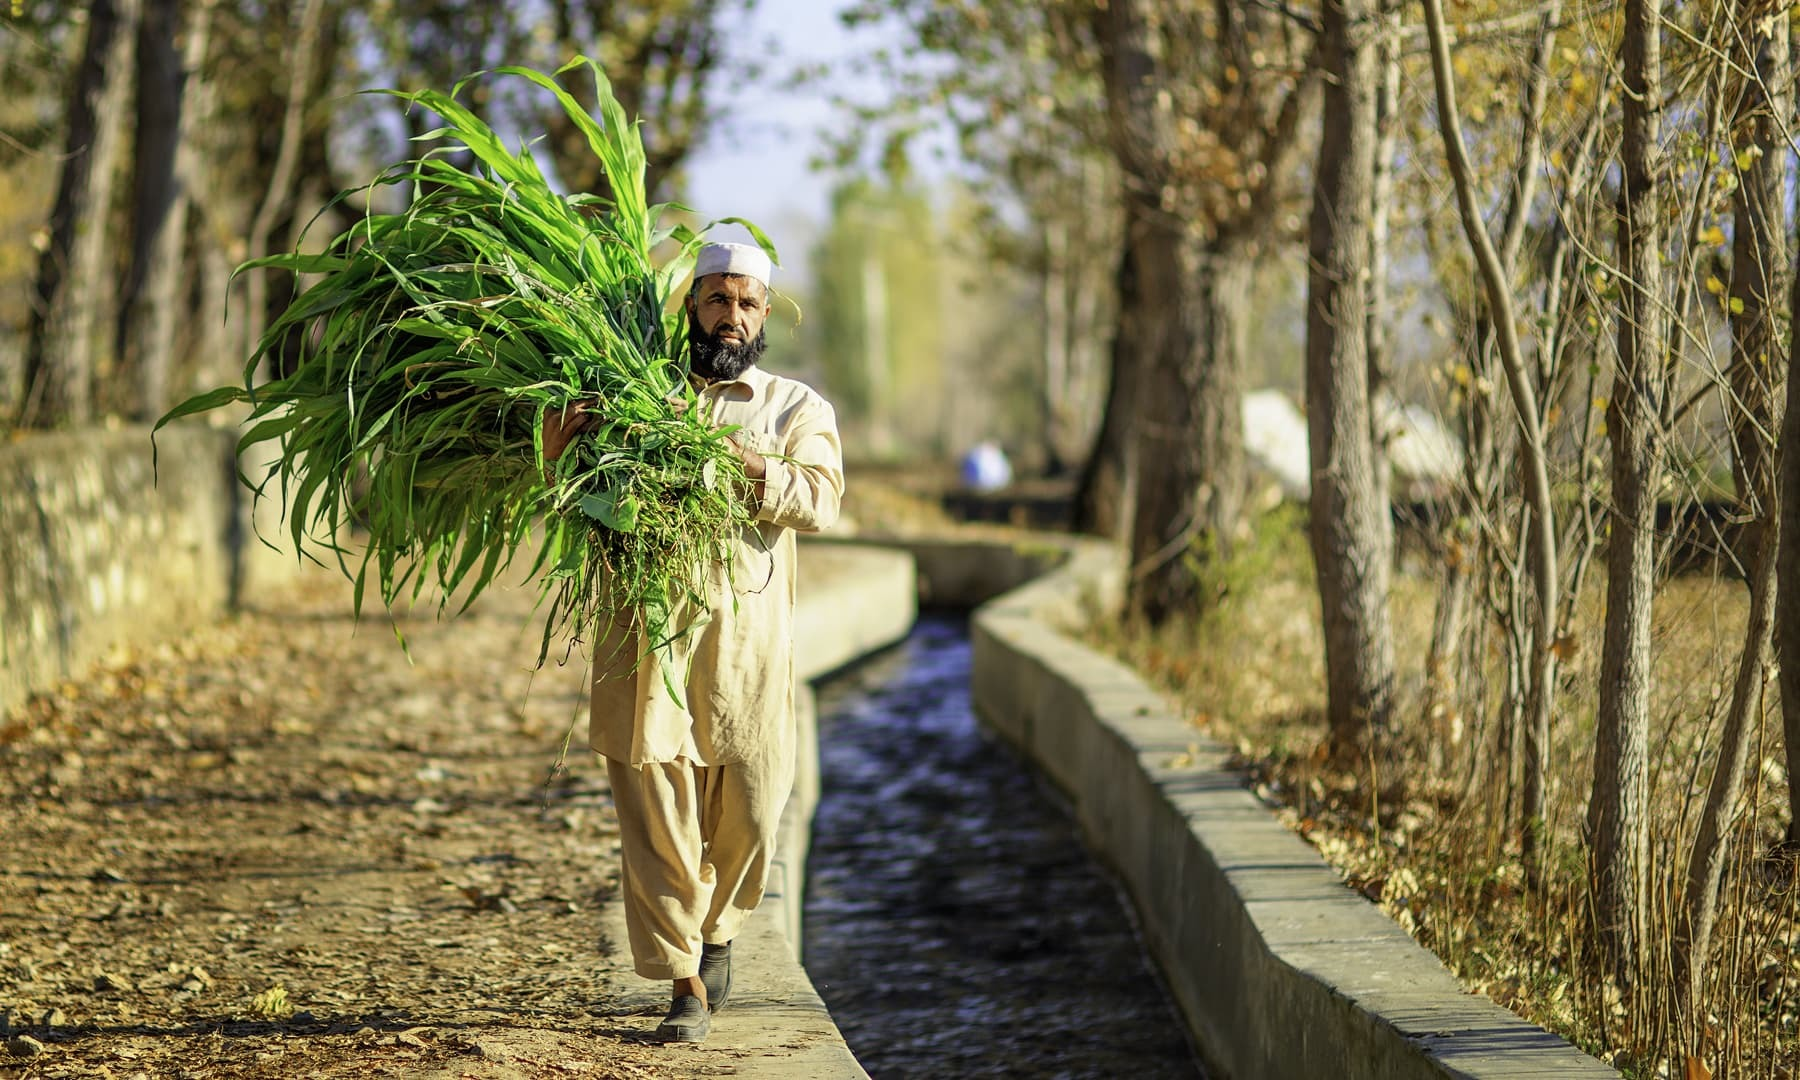 A farmer in Kabal, Swat.